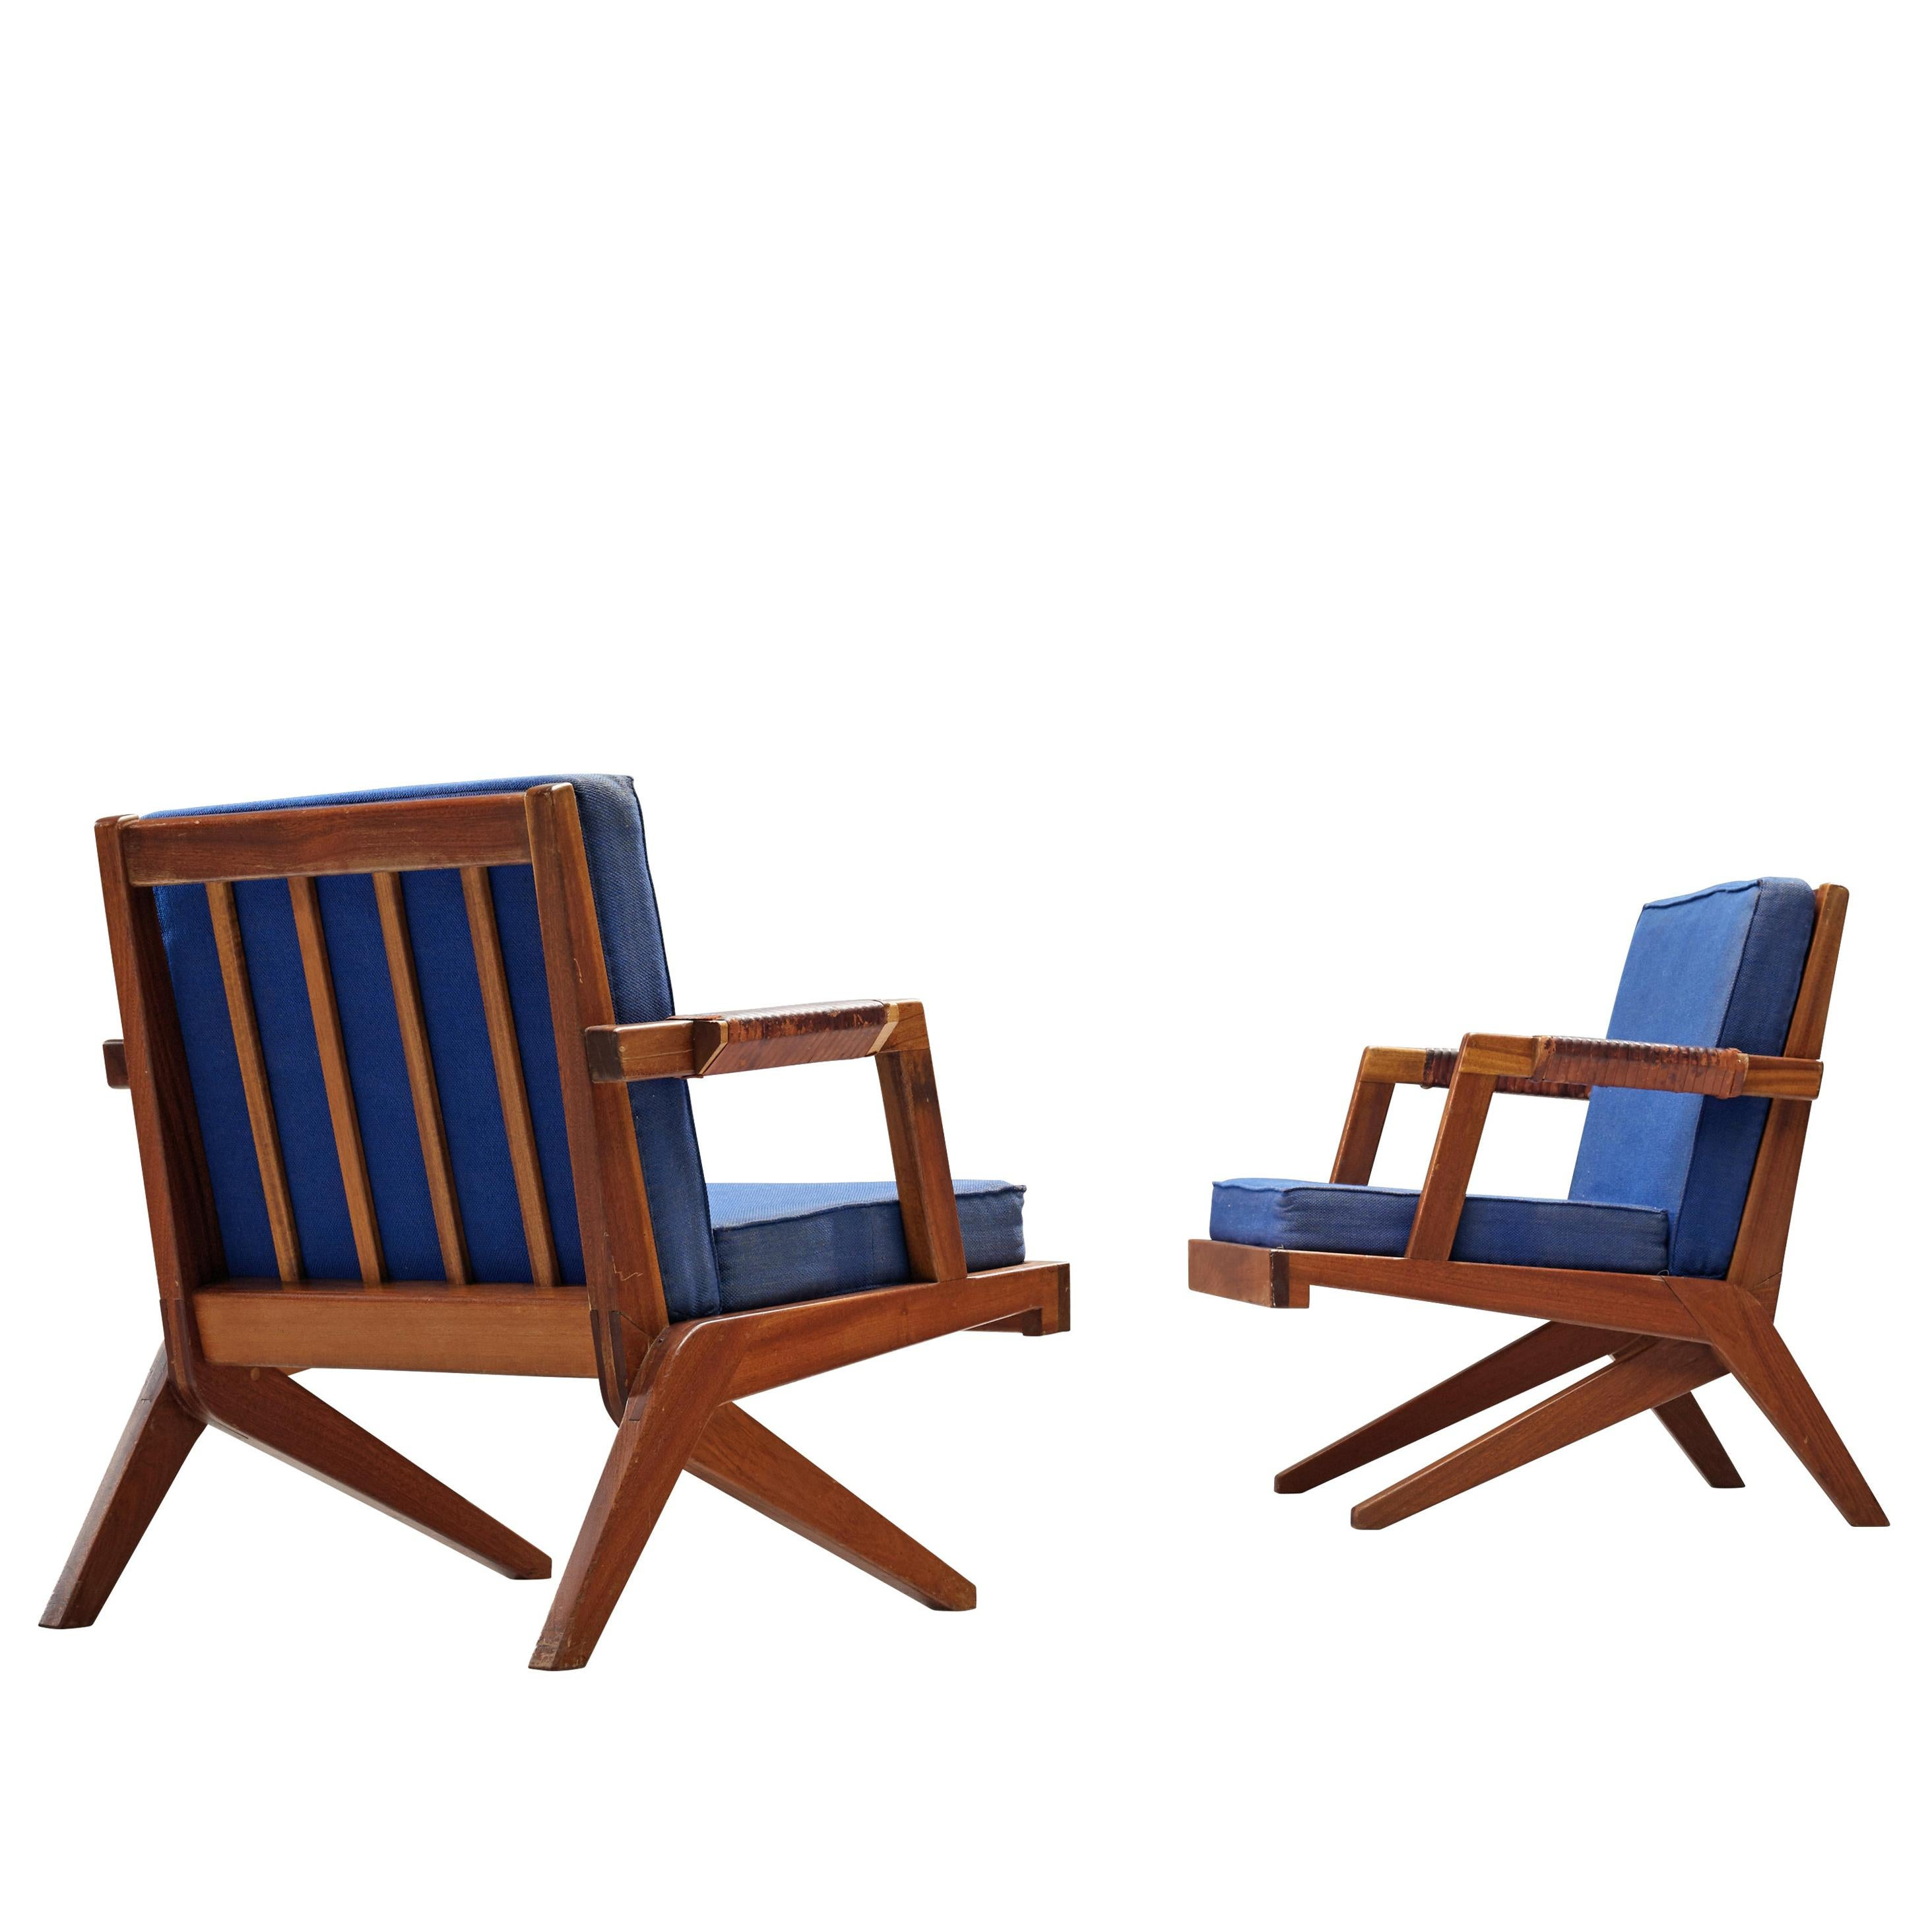 Olavi Hanninen 'Boomerang' Lounge Chairs with Blue Upholstery